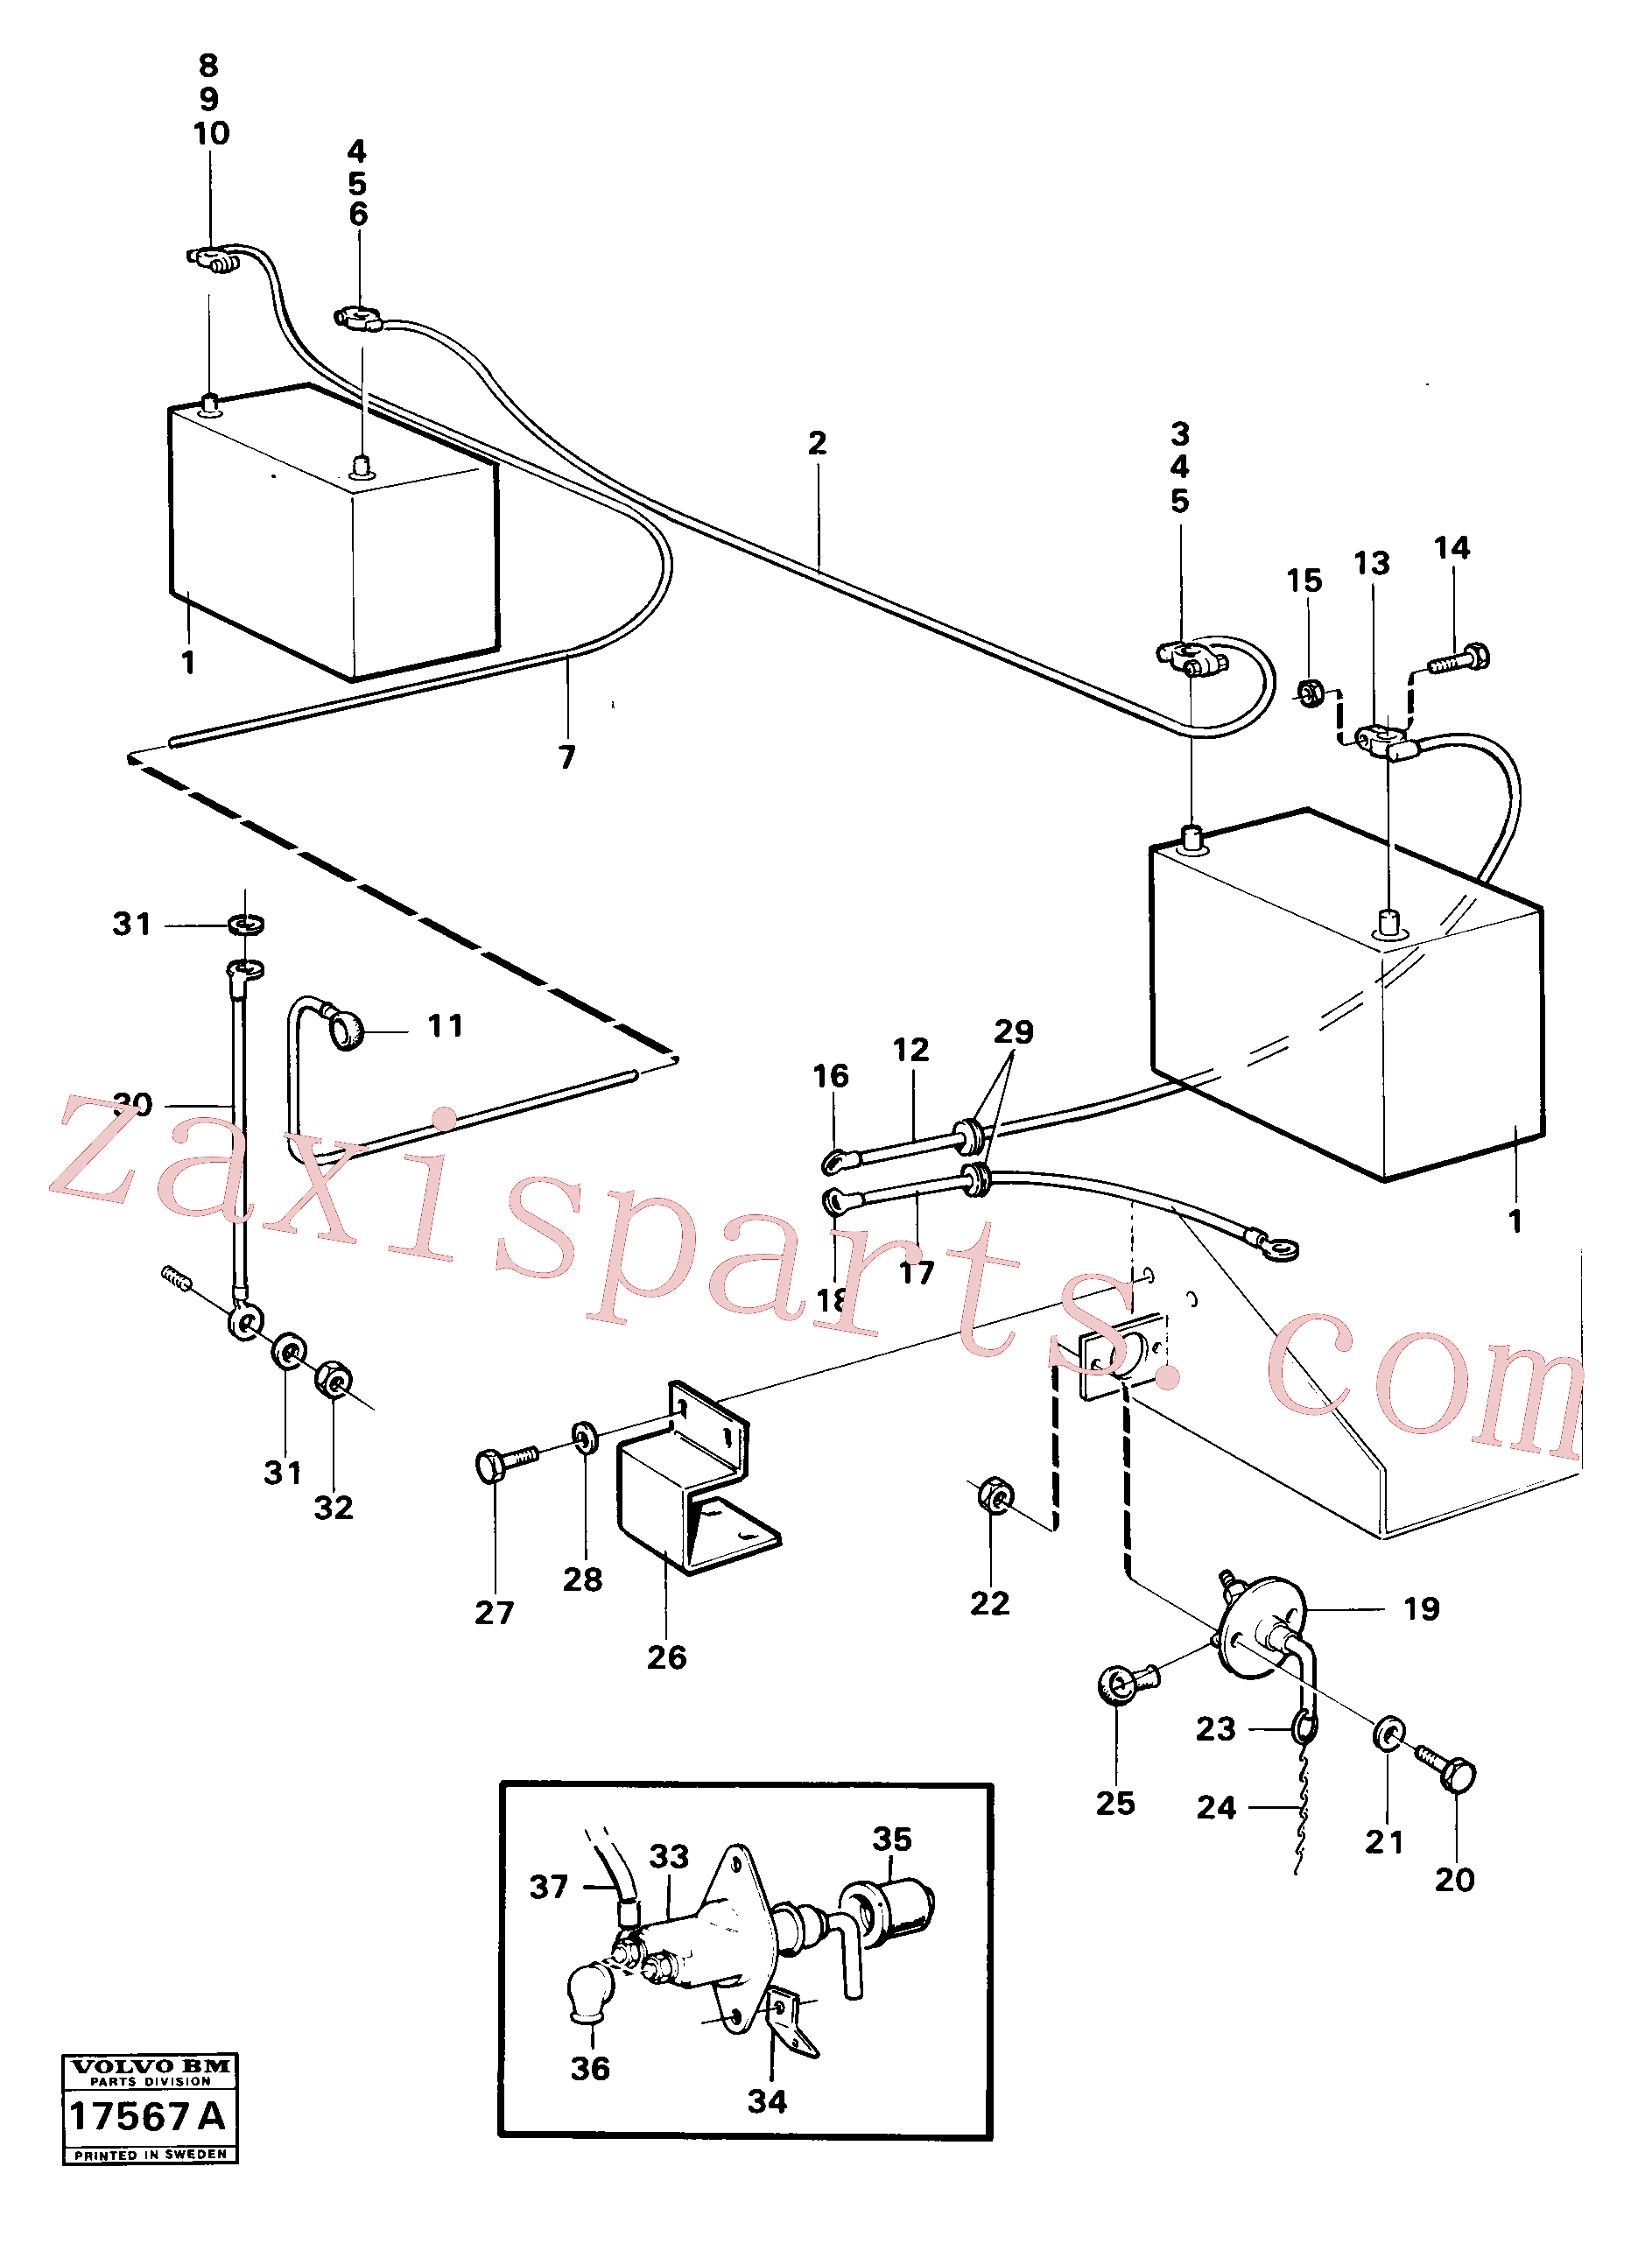 VOE13955781 for Volvo Battery with assembling details(17567A assembly)